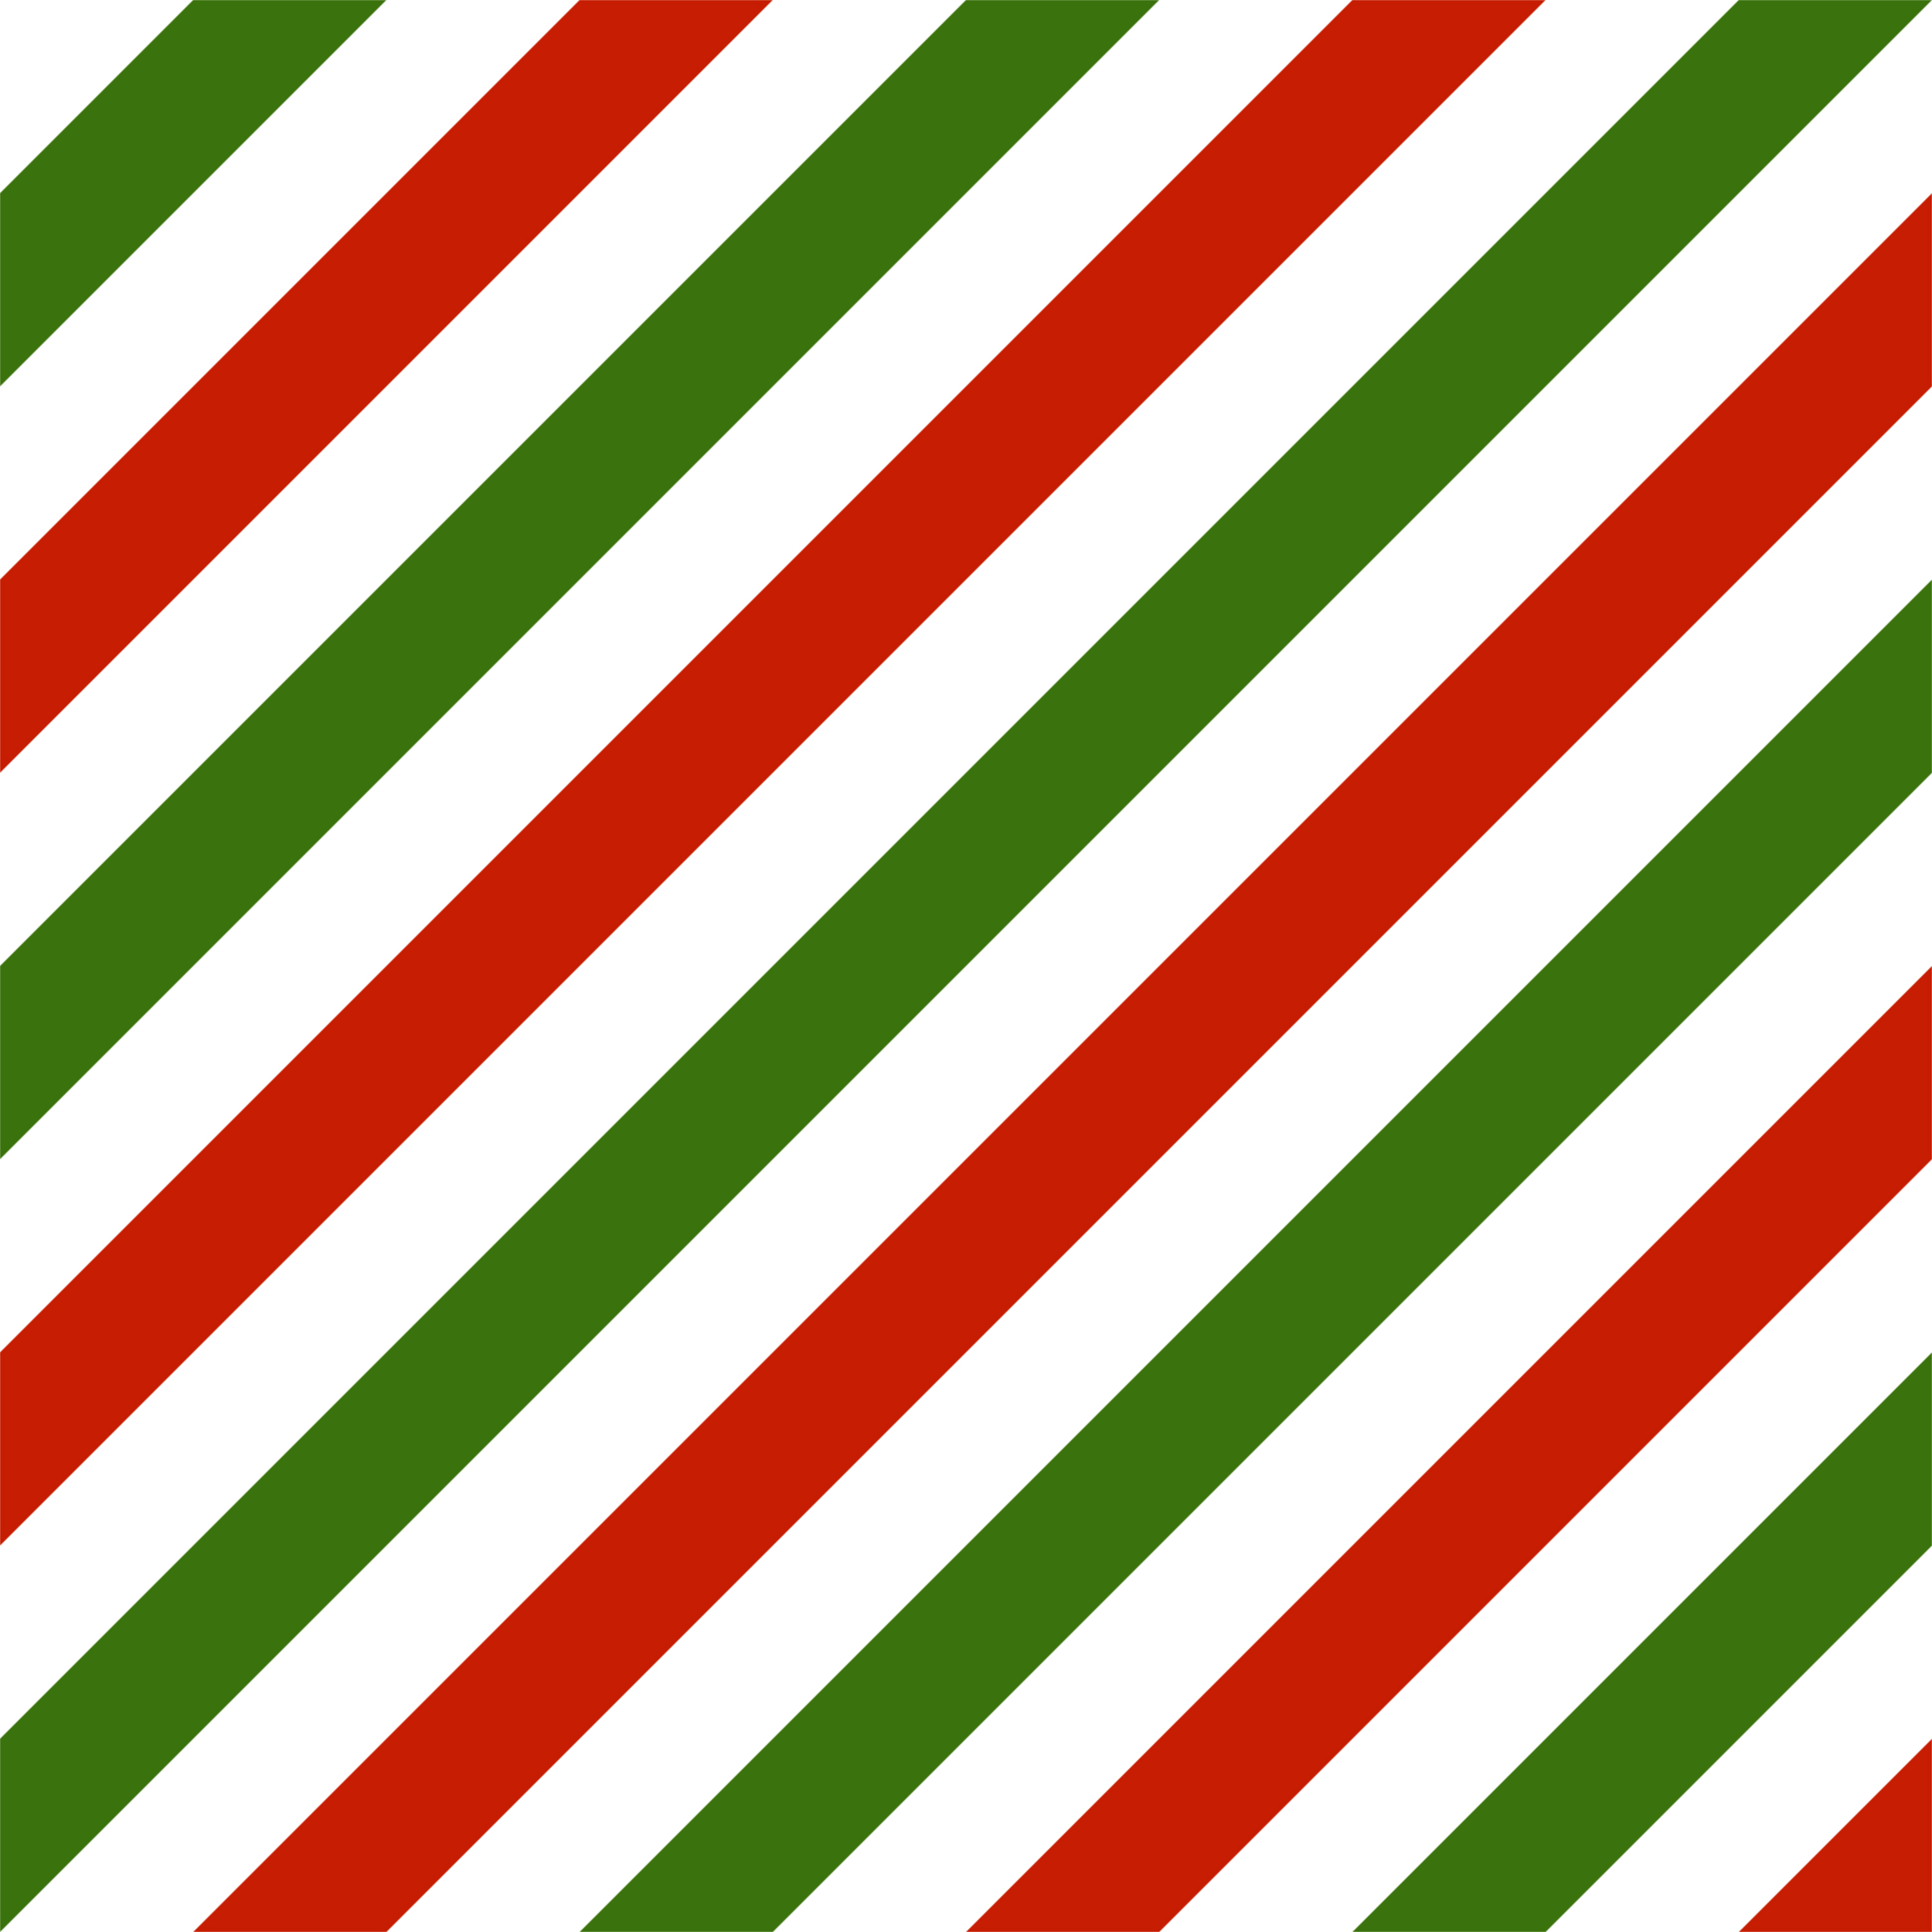 Hd Nature Wallpaper For Android Phone Download Red And Green Striped Wallpaper Gallery